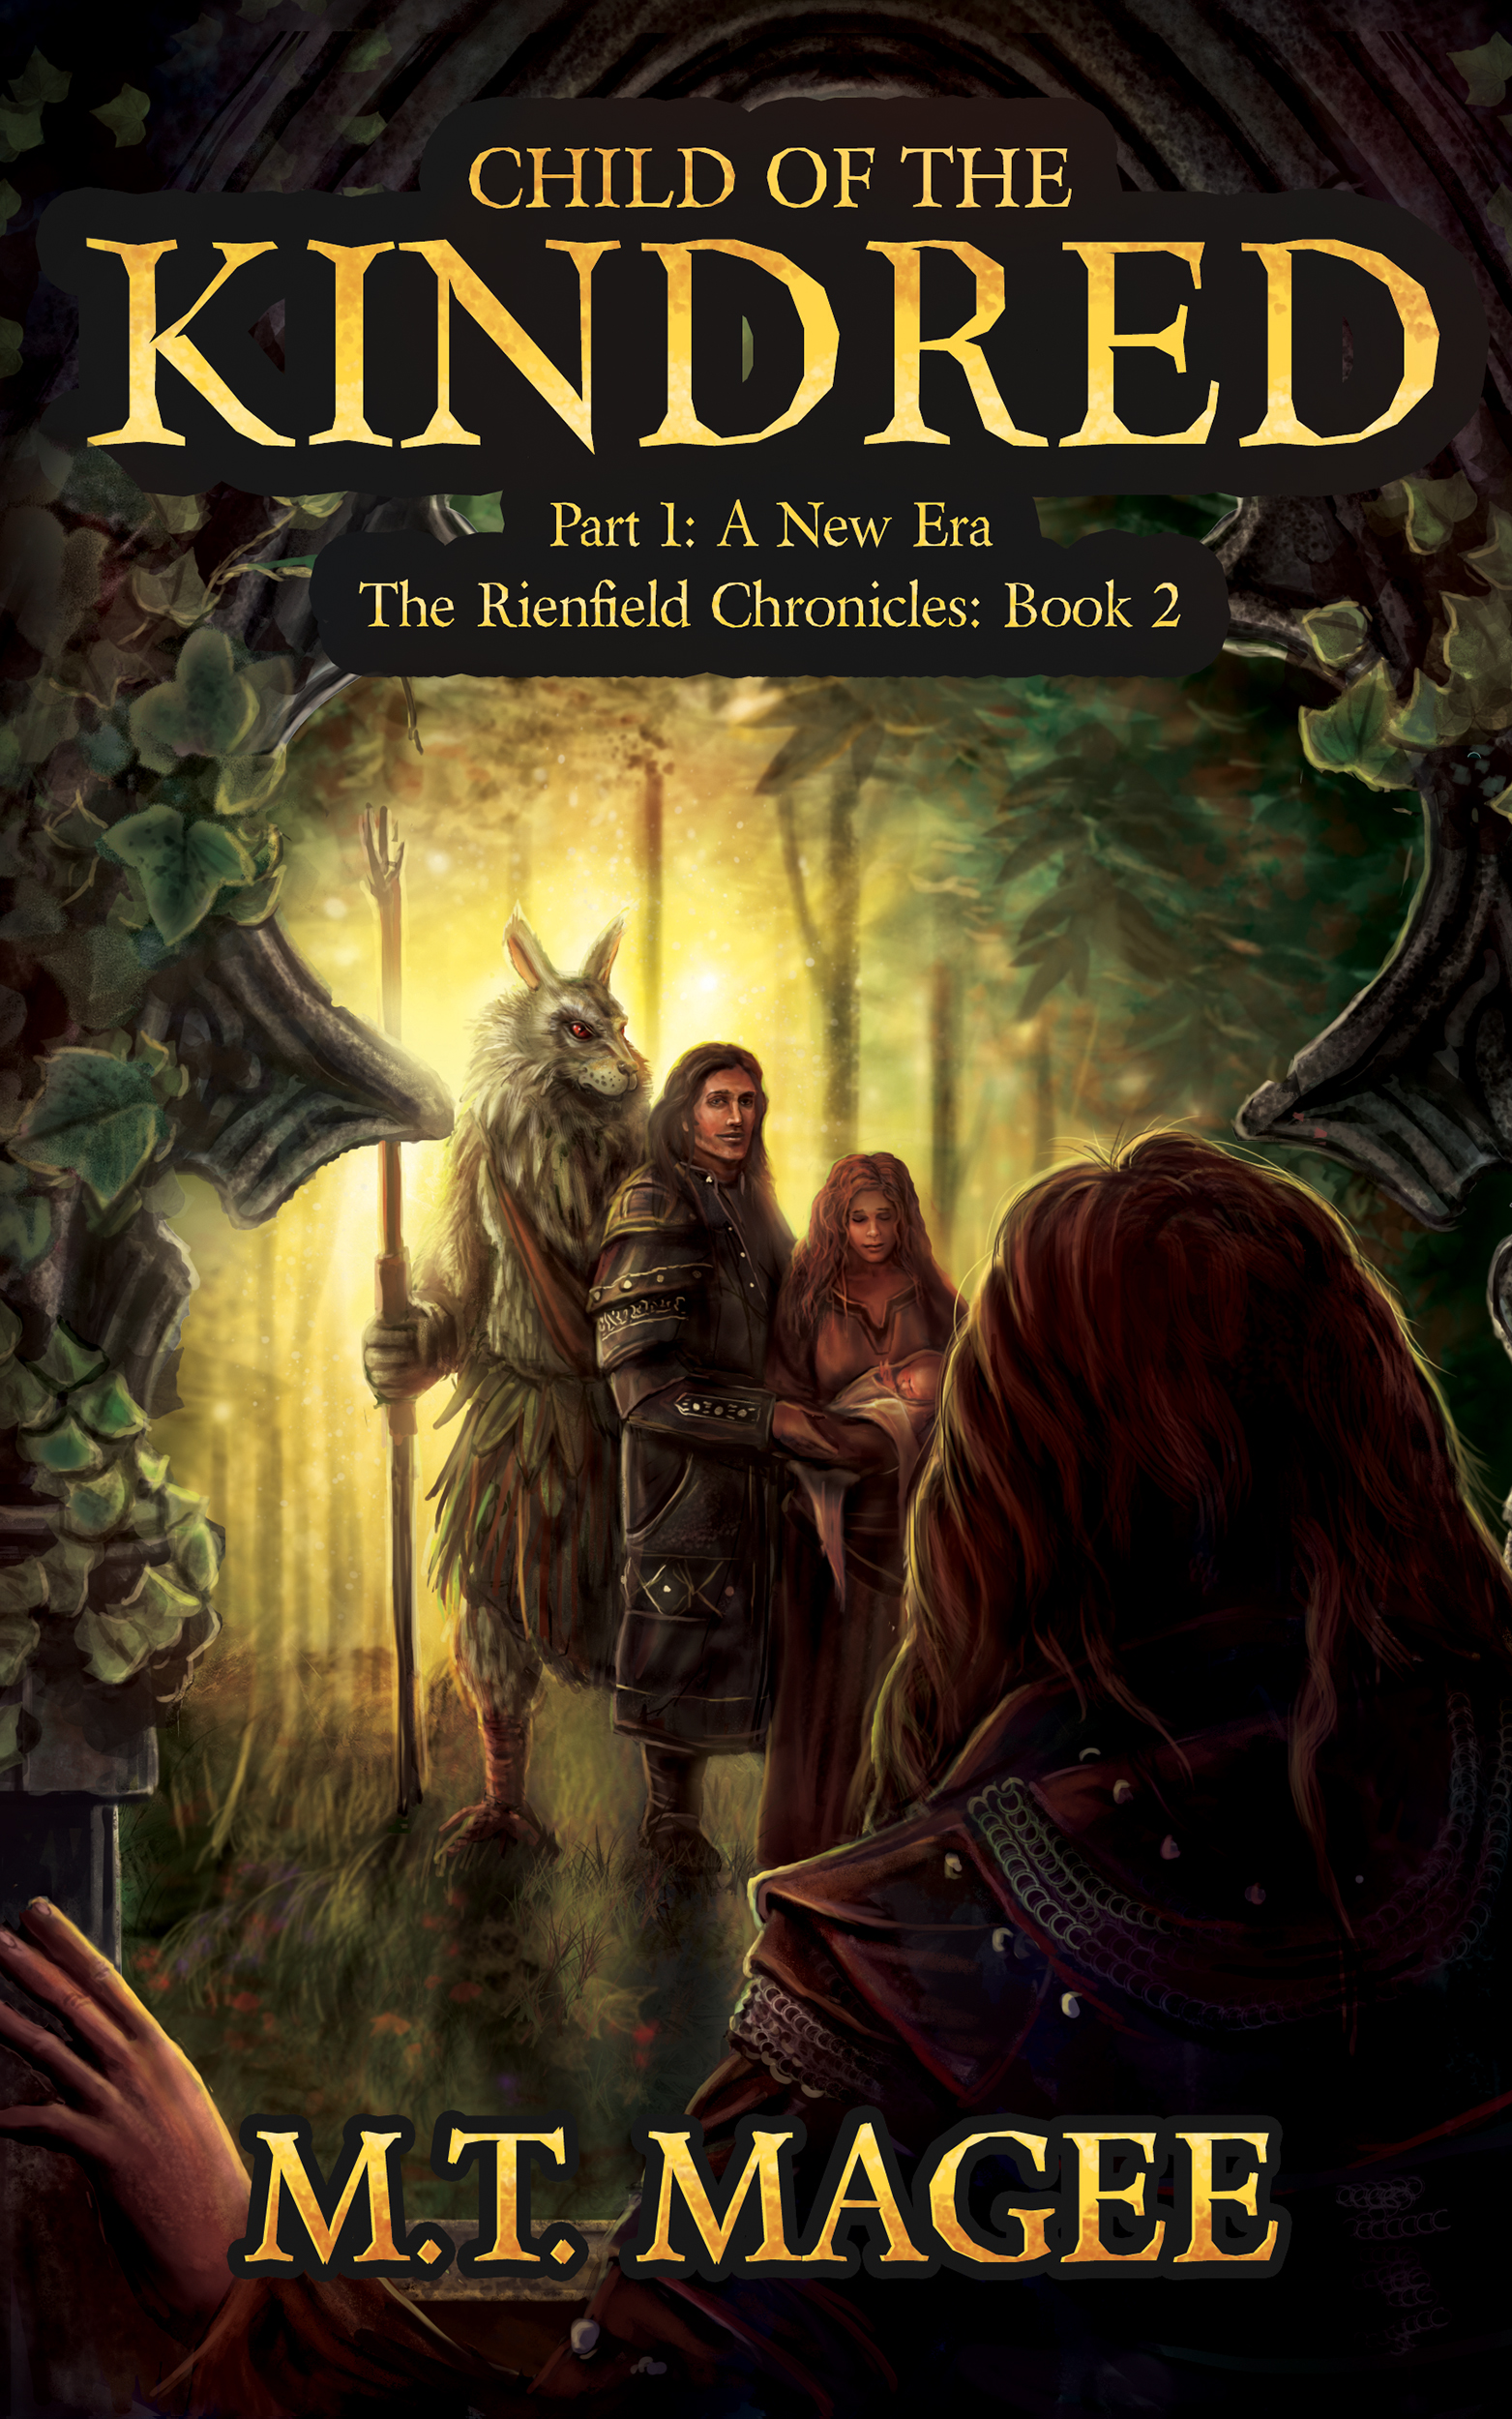 Book Cover Fantasy Wiki : Fantasy book covers the rienfield chronicles noble